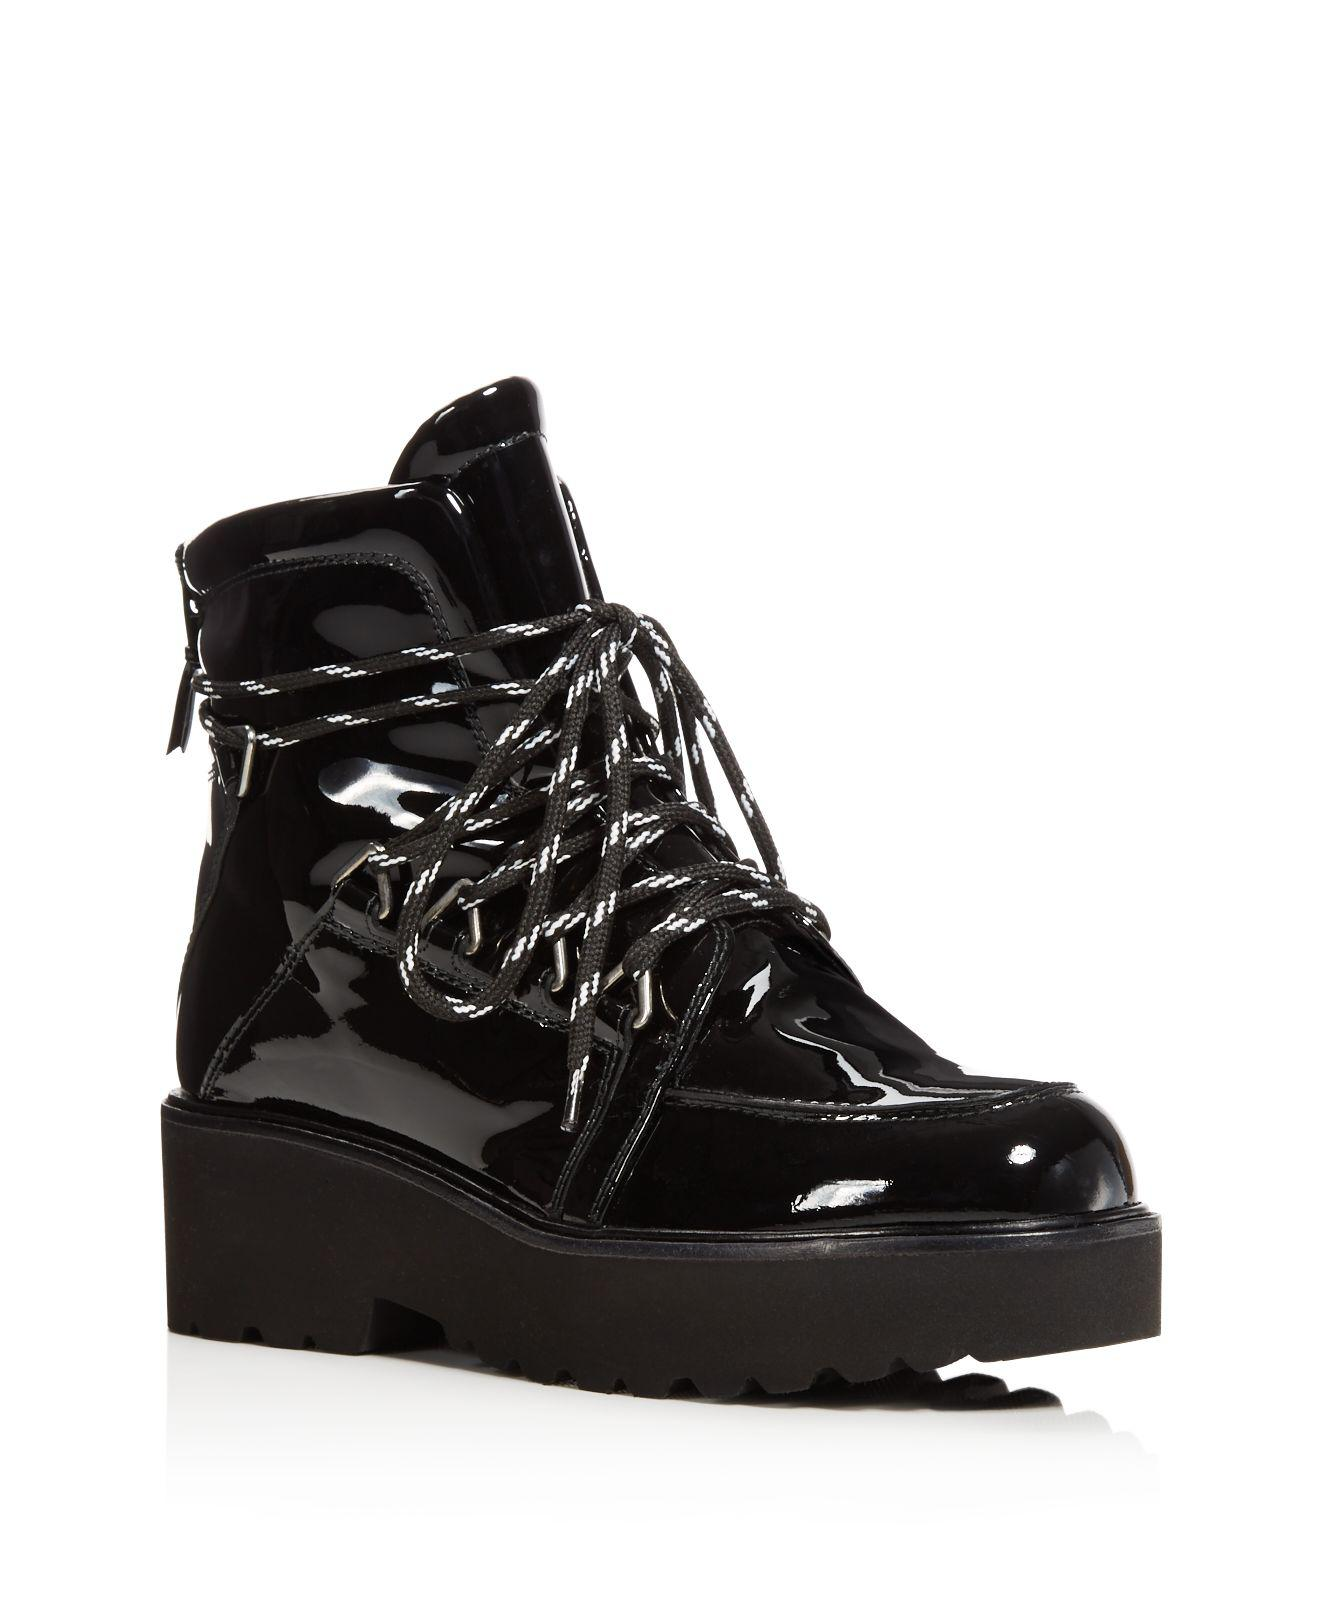 Stuart Weitzman Patent Leather Lace-Up Boots from china cheap price limited edition sale online outlet official cheap real eastbay sale wiki xLXlr4X1